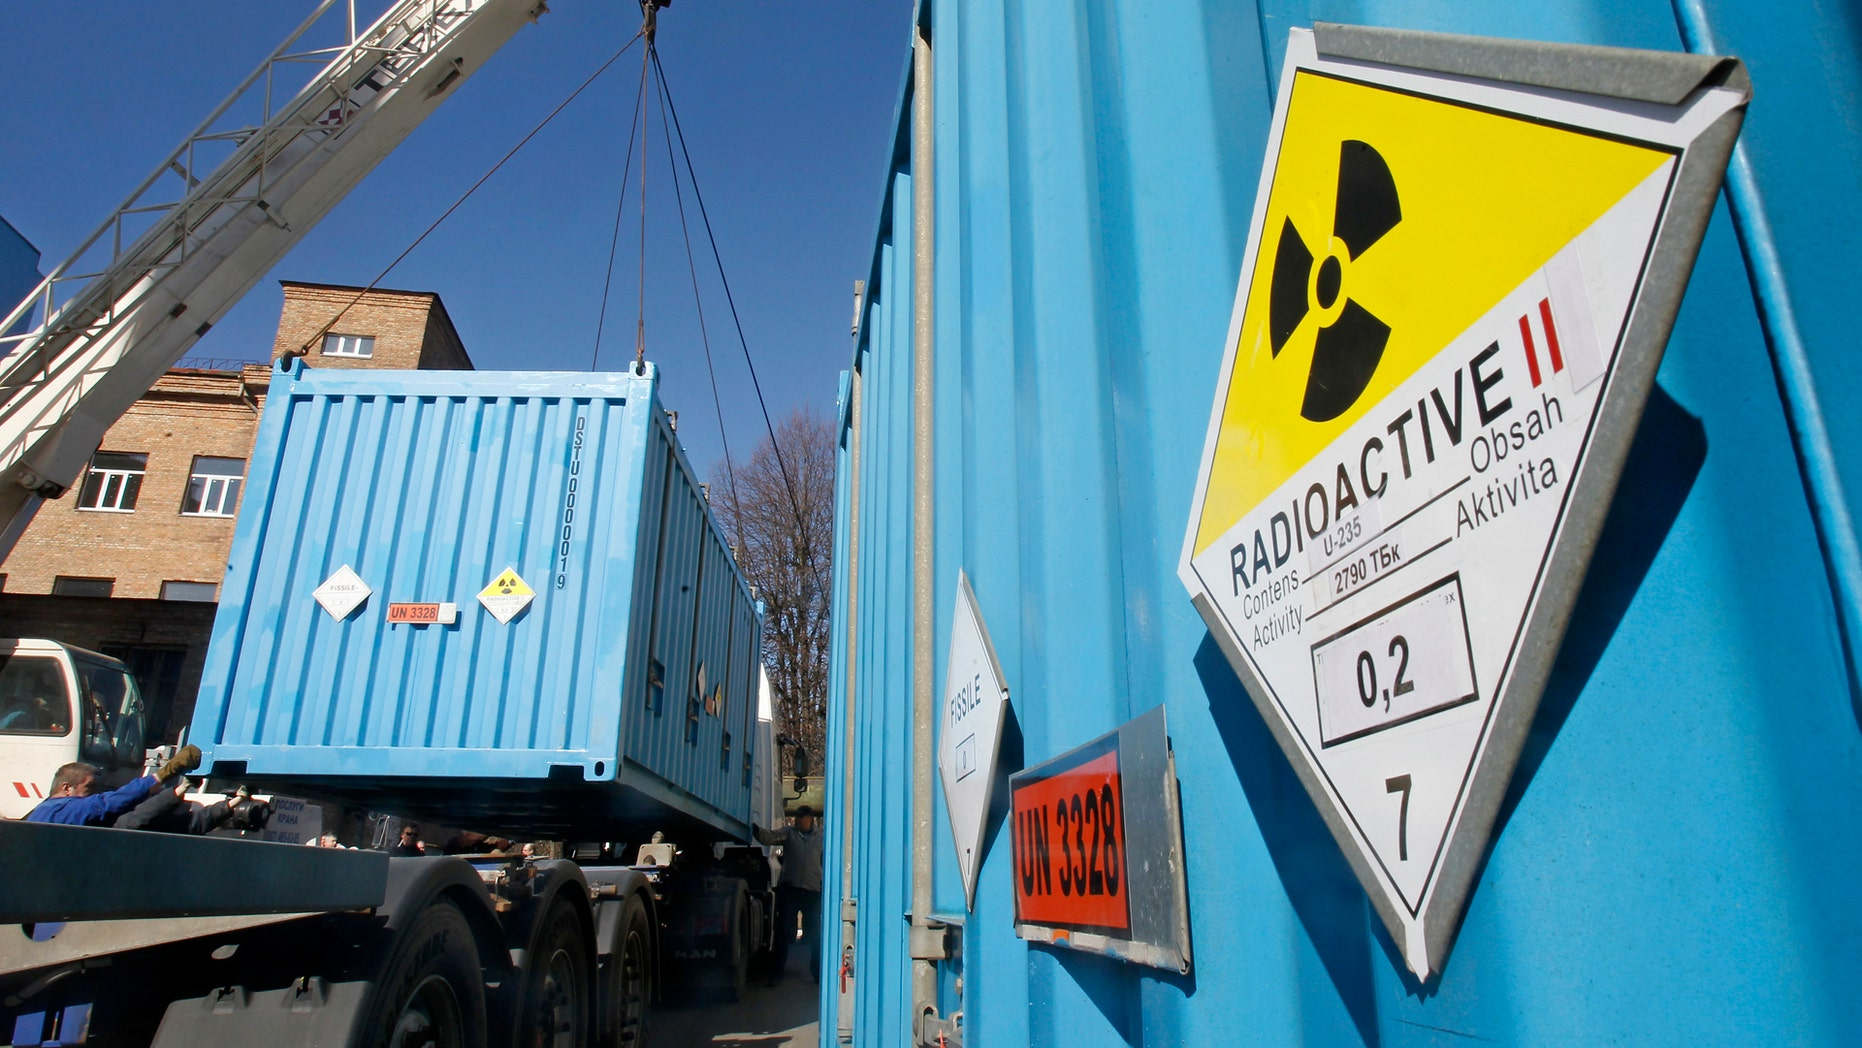 File photo - Workers place a container with spent highly-enriched uranium on a truck at a nuclear research facility in Kiev March 24, 2012. (REUTERS/Gleb Garanich)